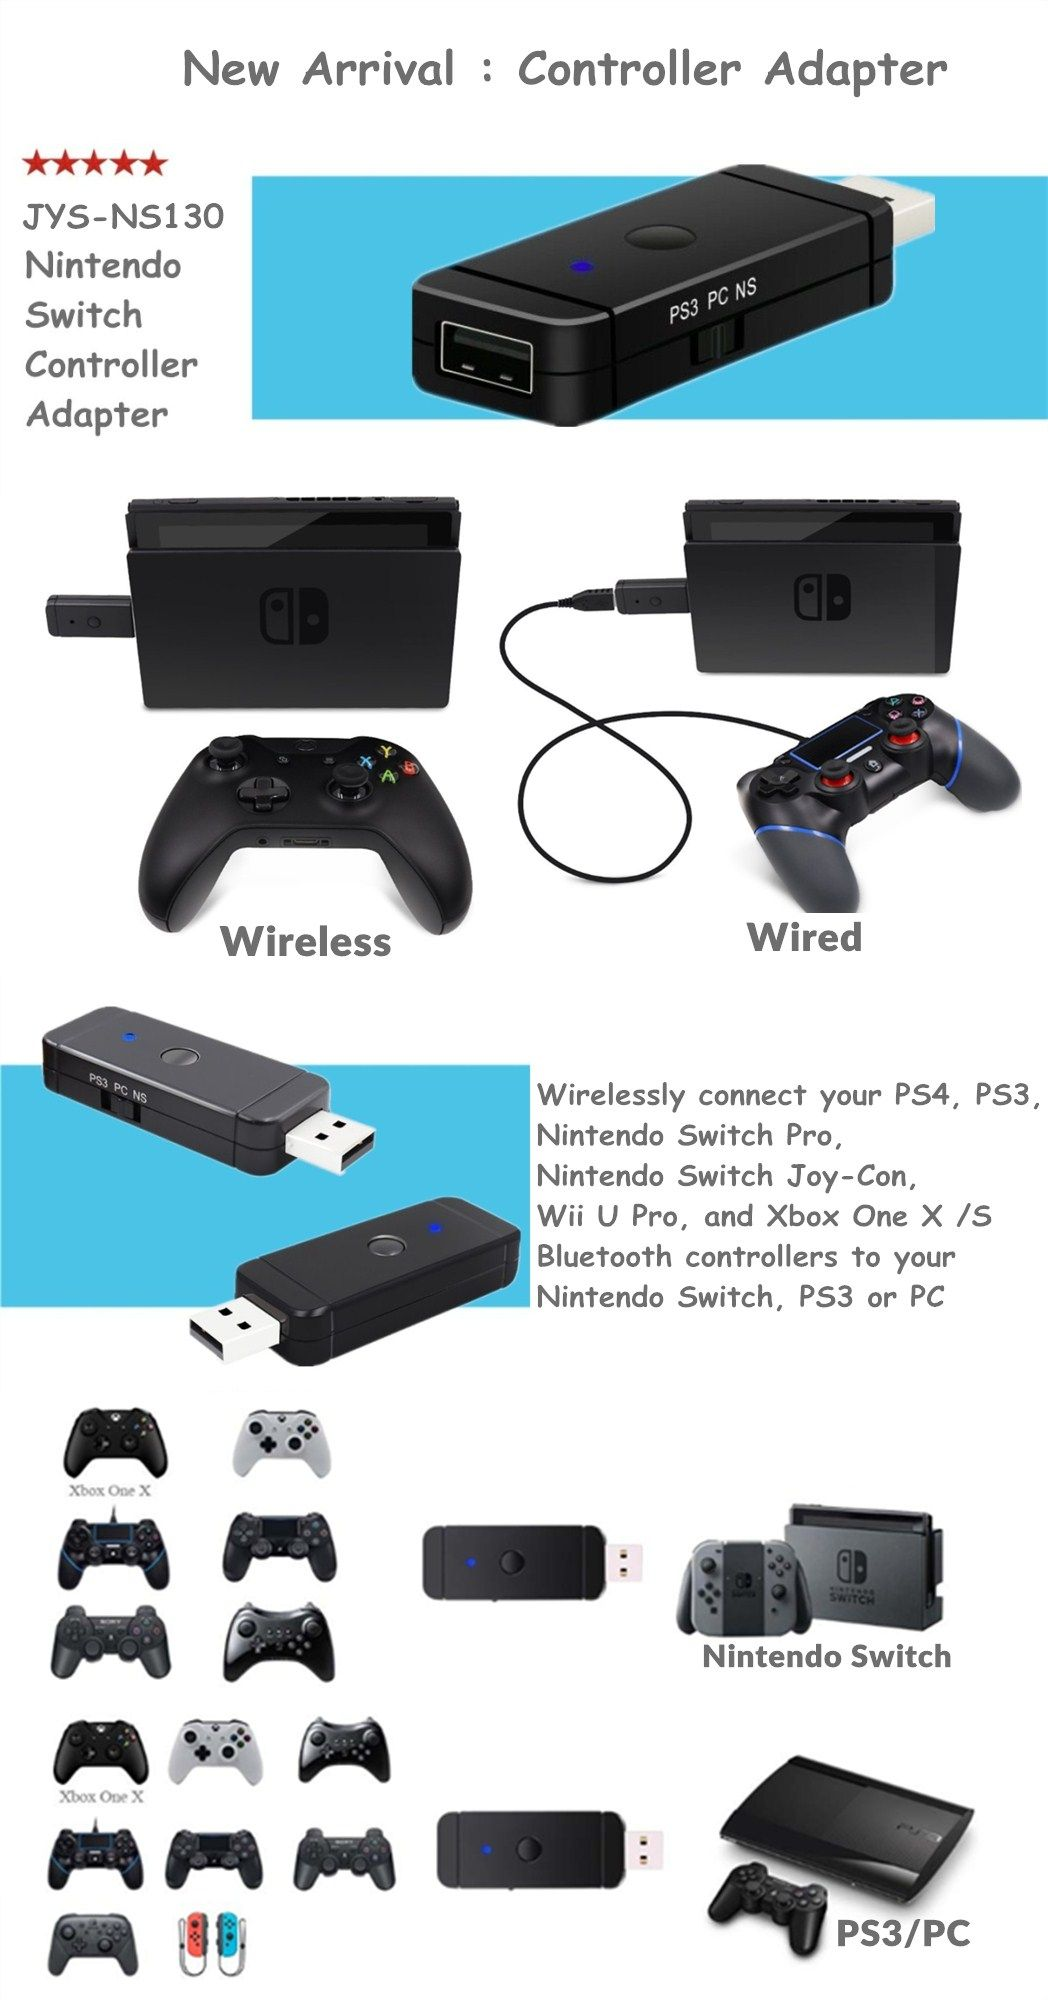 hight resolution of universal wireless and wired controller adapter help players to use ps3 ps4 xbox 360 xbox one wii u controllers on nintendo switch ps3 and pc